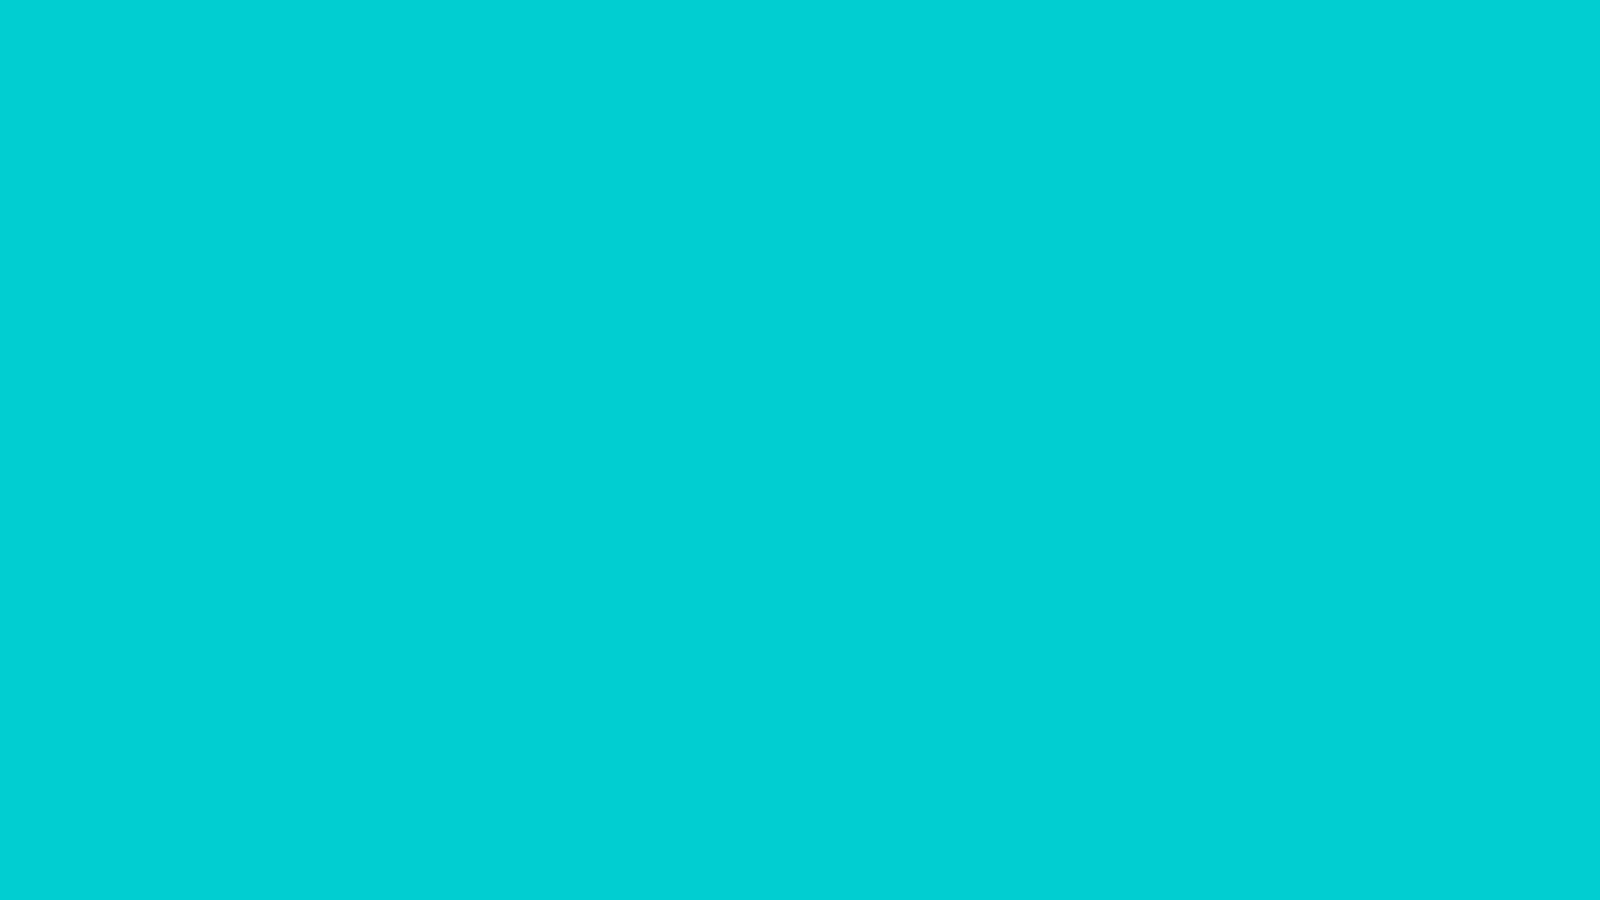 1600x900 Dark Turquoise Solid Color Background